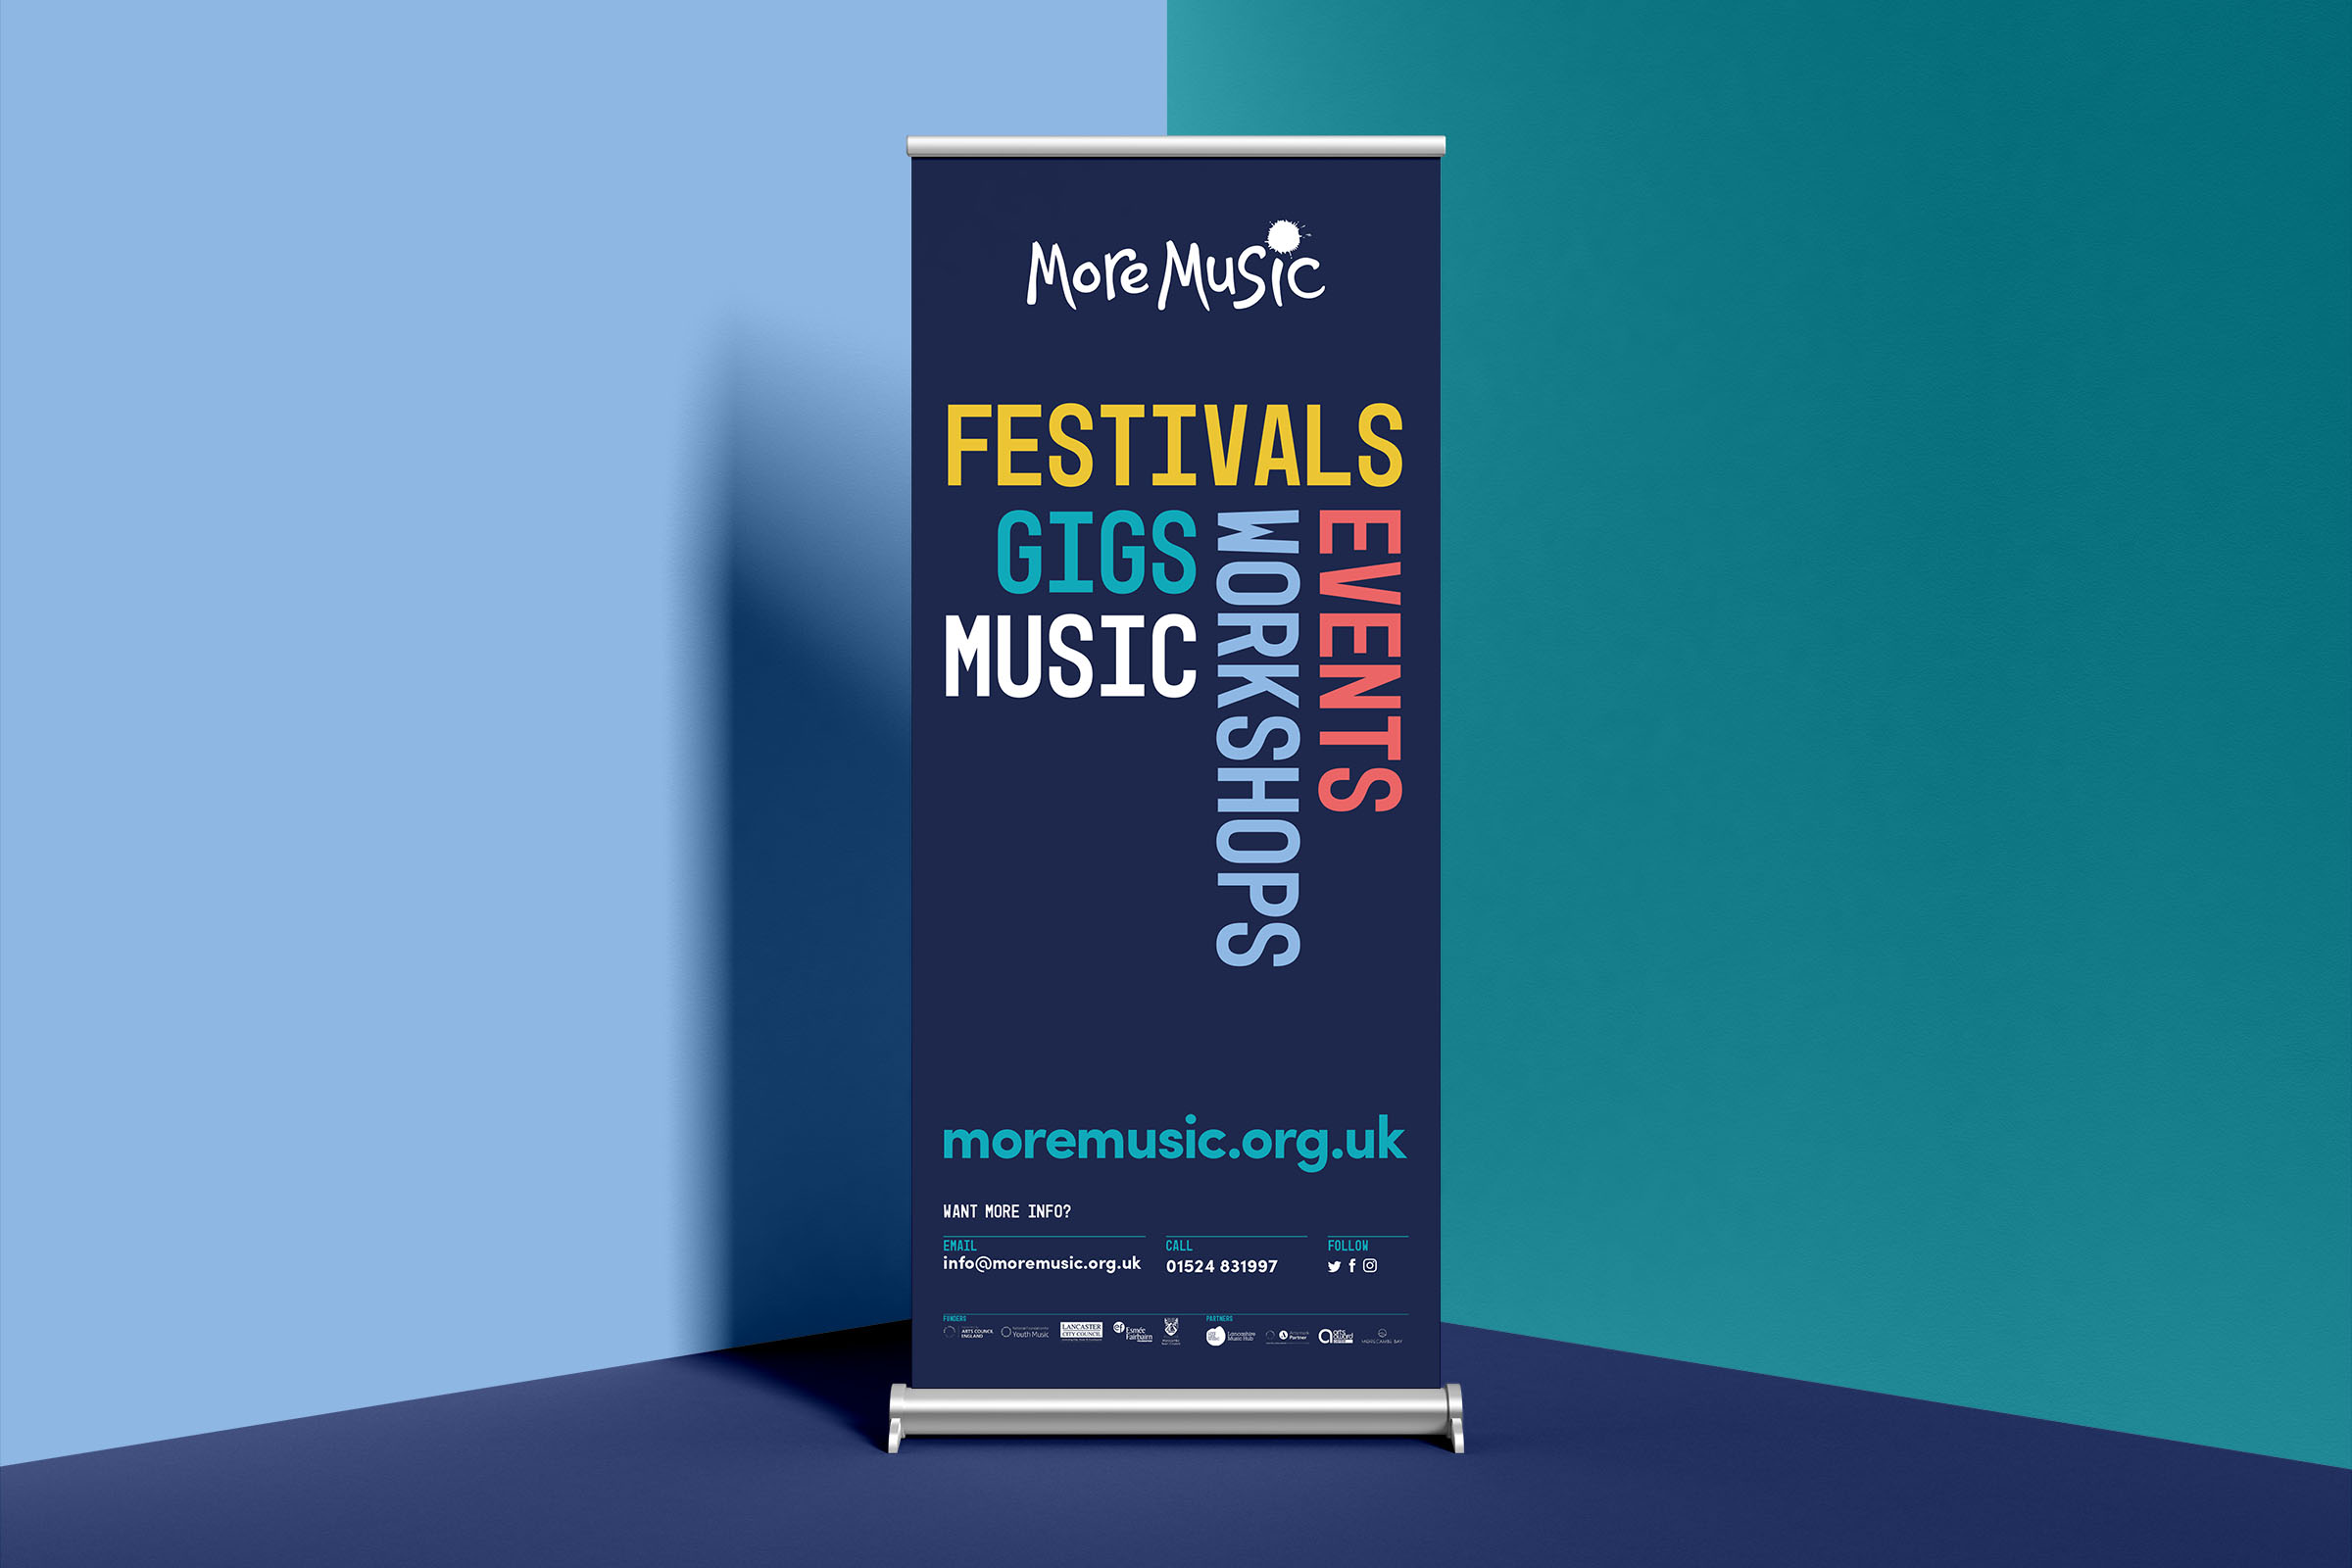 More-Music-Roll-Up-Banner-Mockup-3